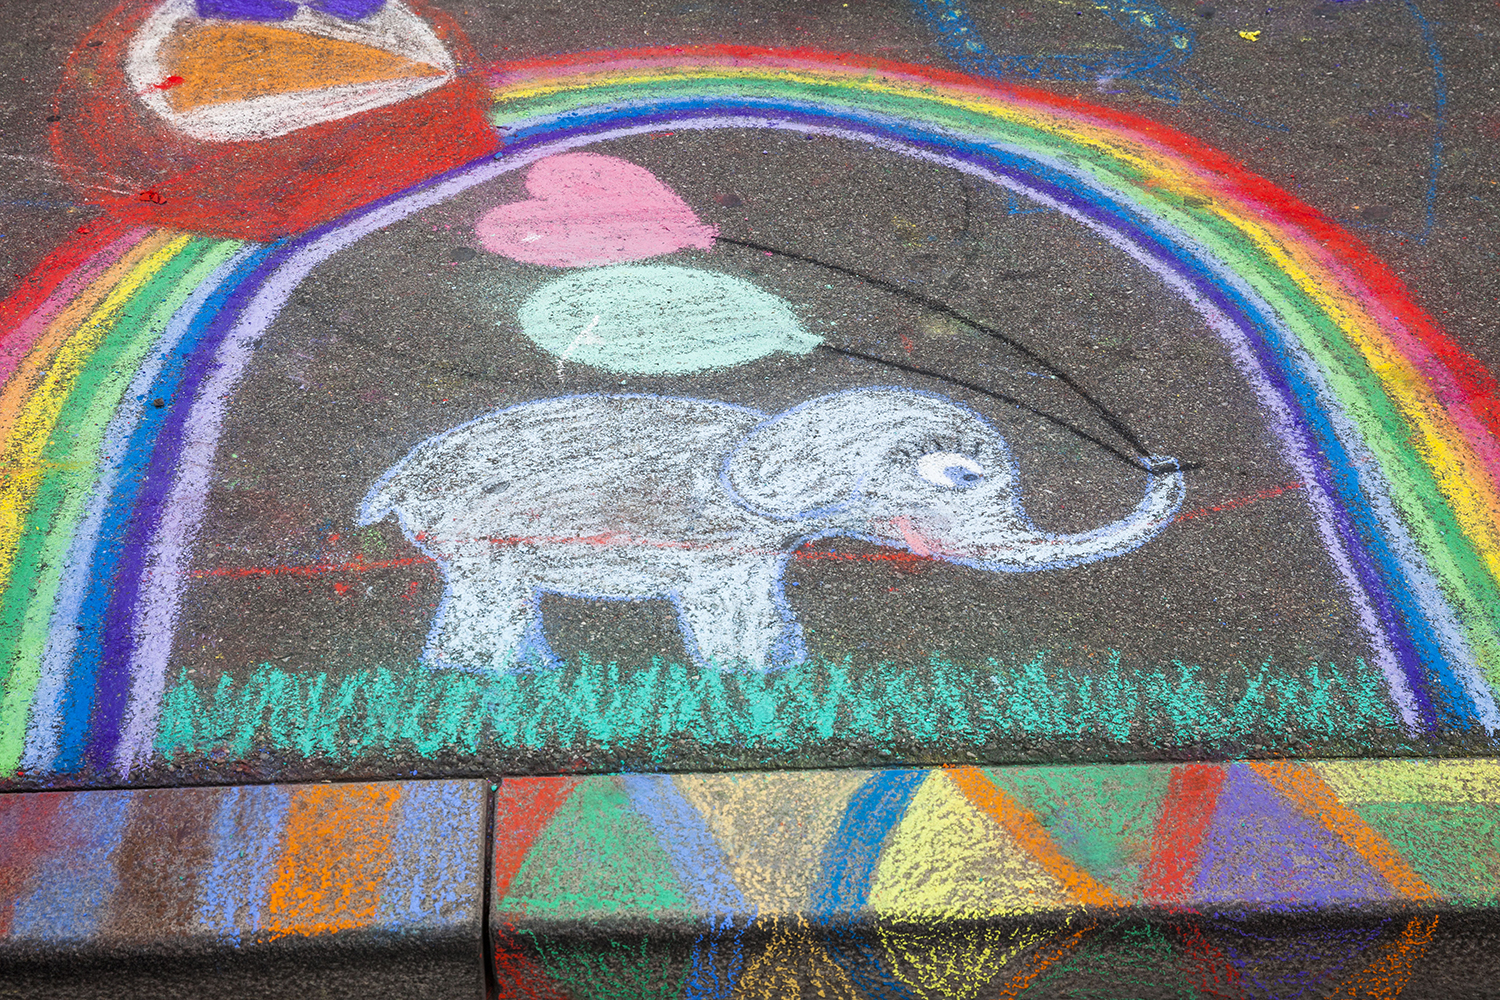 chalk_painting_day_18-09-16_helenalundquist_36